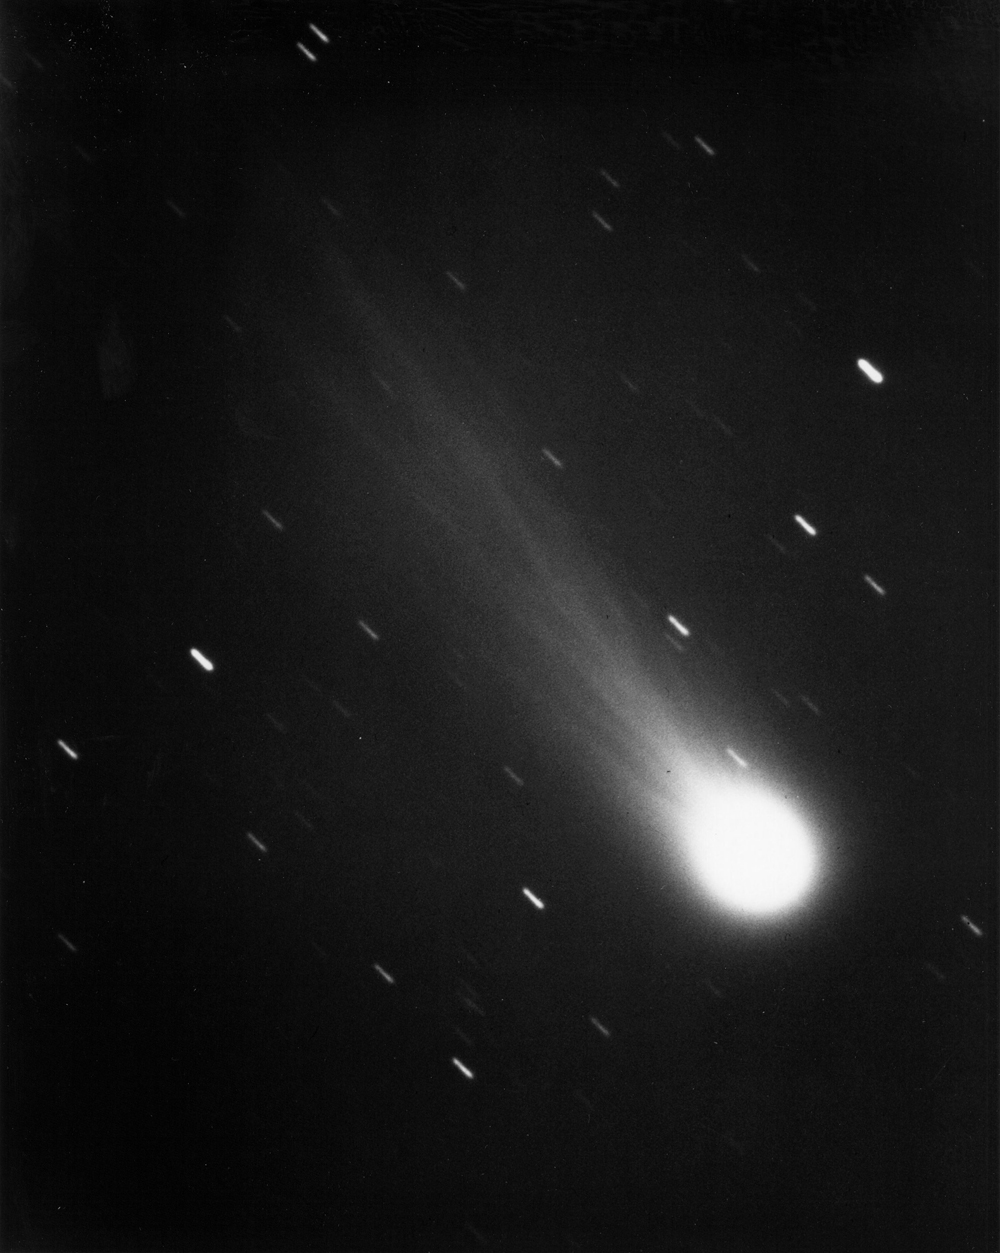 This photograph of Halley's Comet was taken January 13,1986, by James W. Young, resident astronomer of JPL's Table Mountain Observatory in the San Bernardino Mountains, using the 24-inch reflective telescope. <br><br>Streaks caused by the exposure time ar